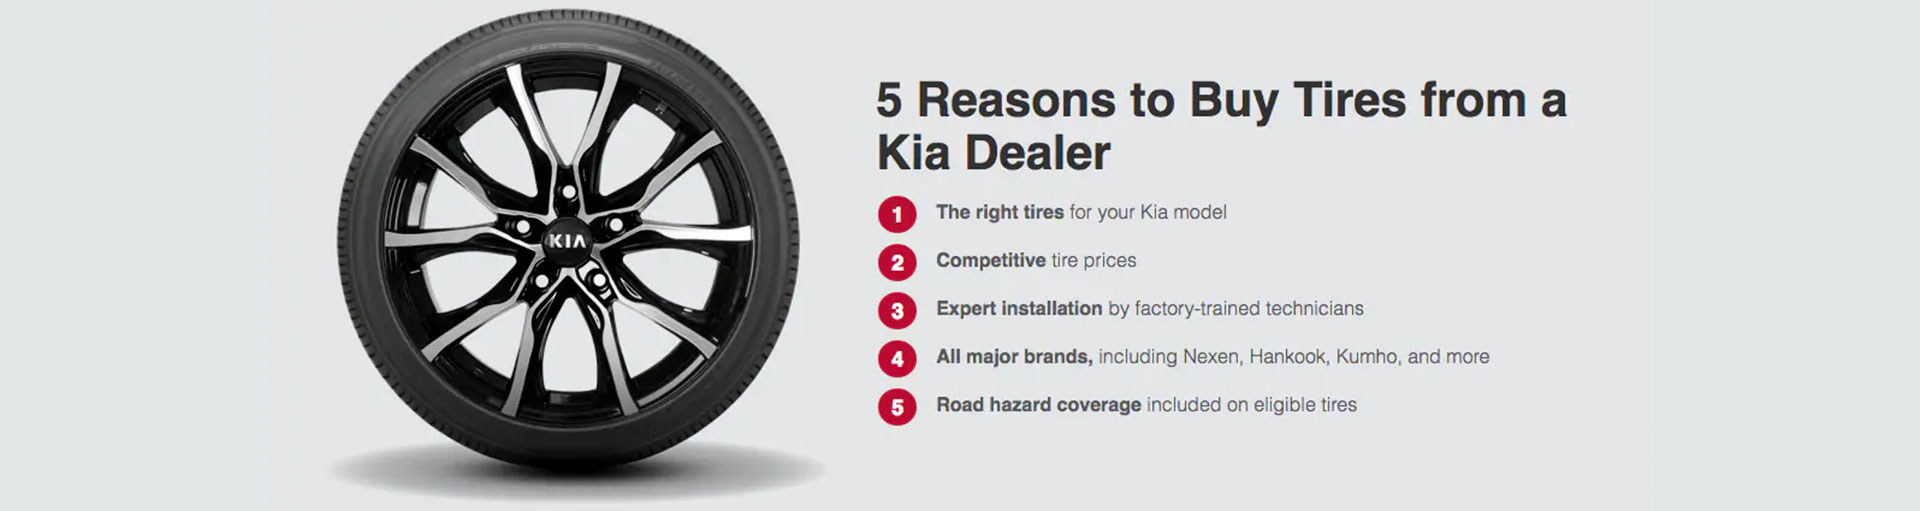 Hagerstown Kia Tire Center